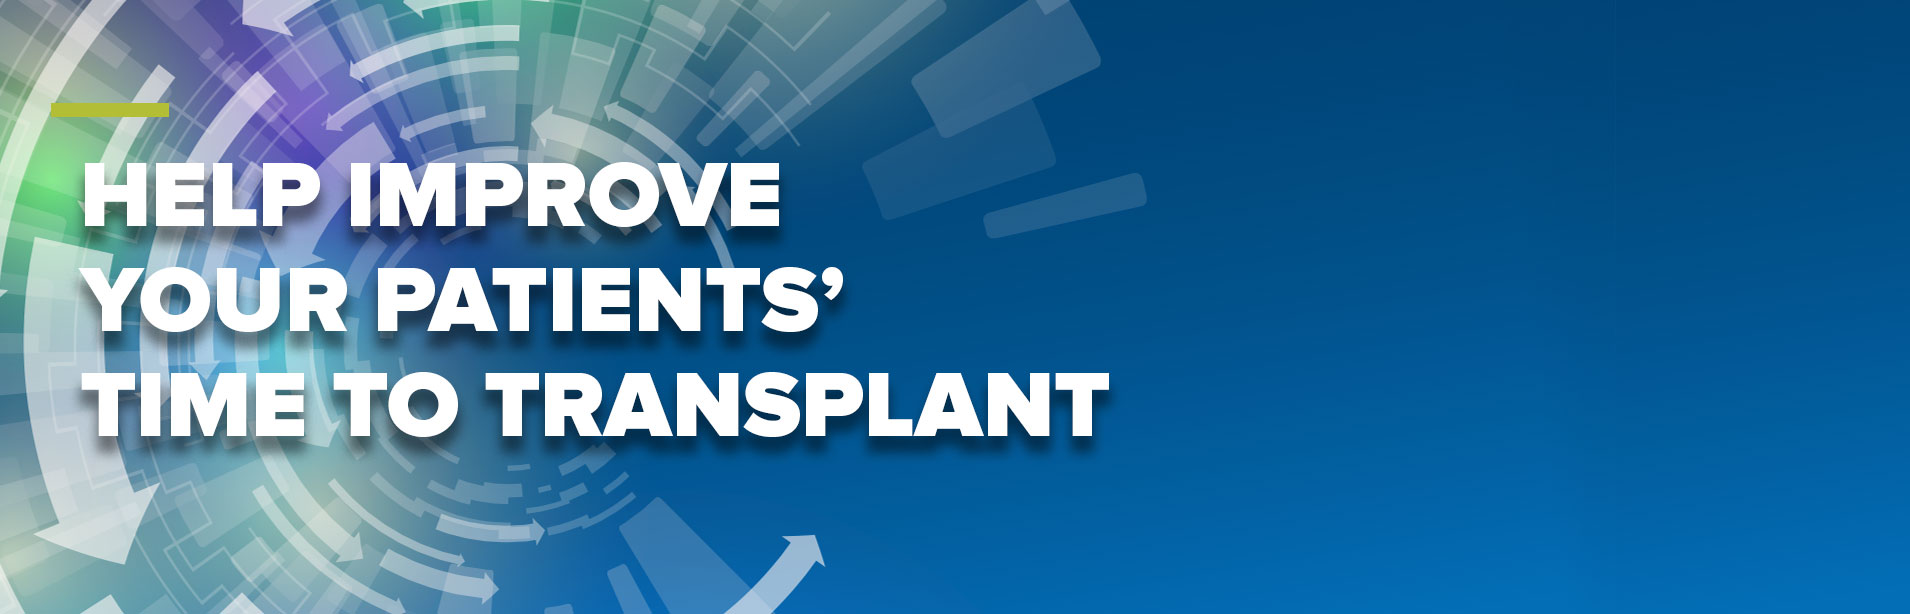 Transplant Centers - Homepage